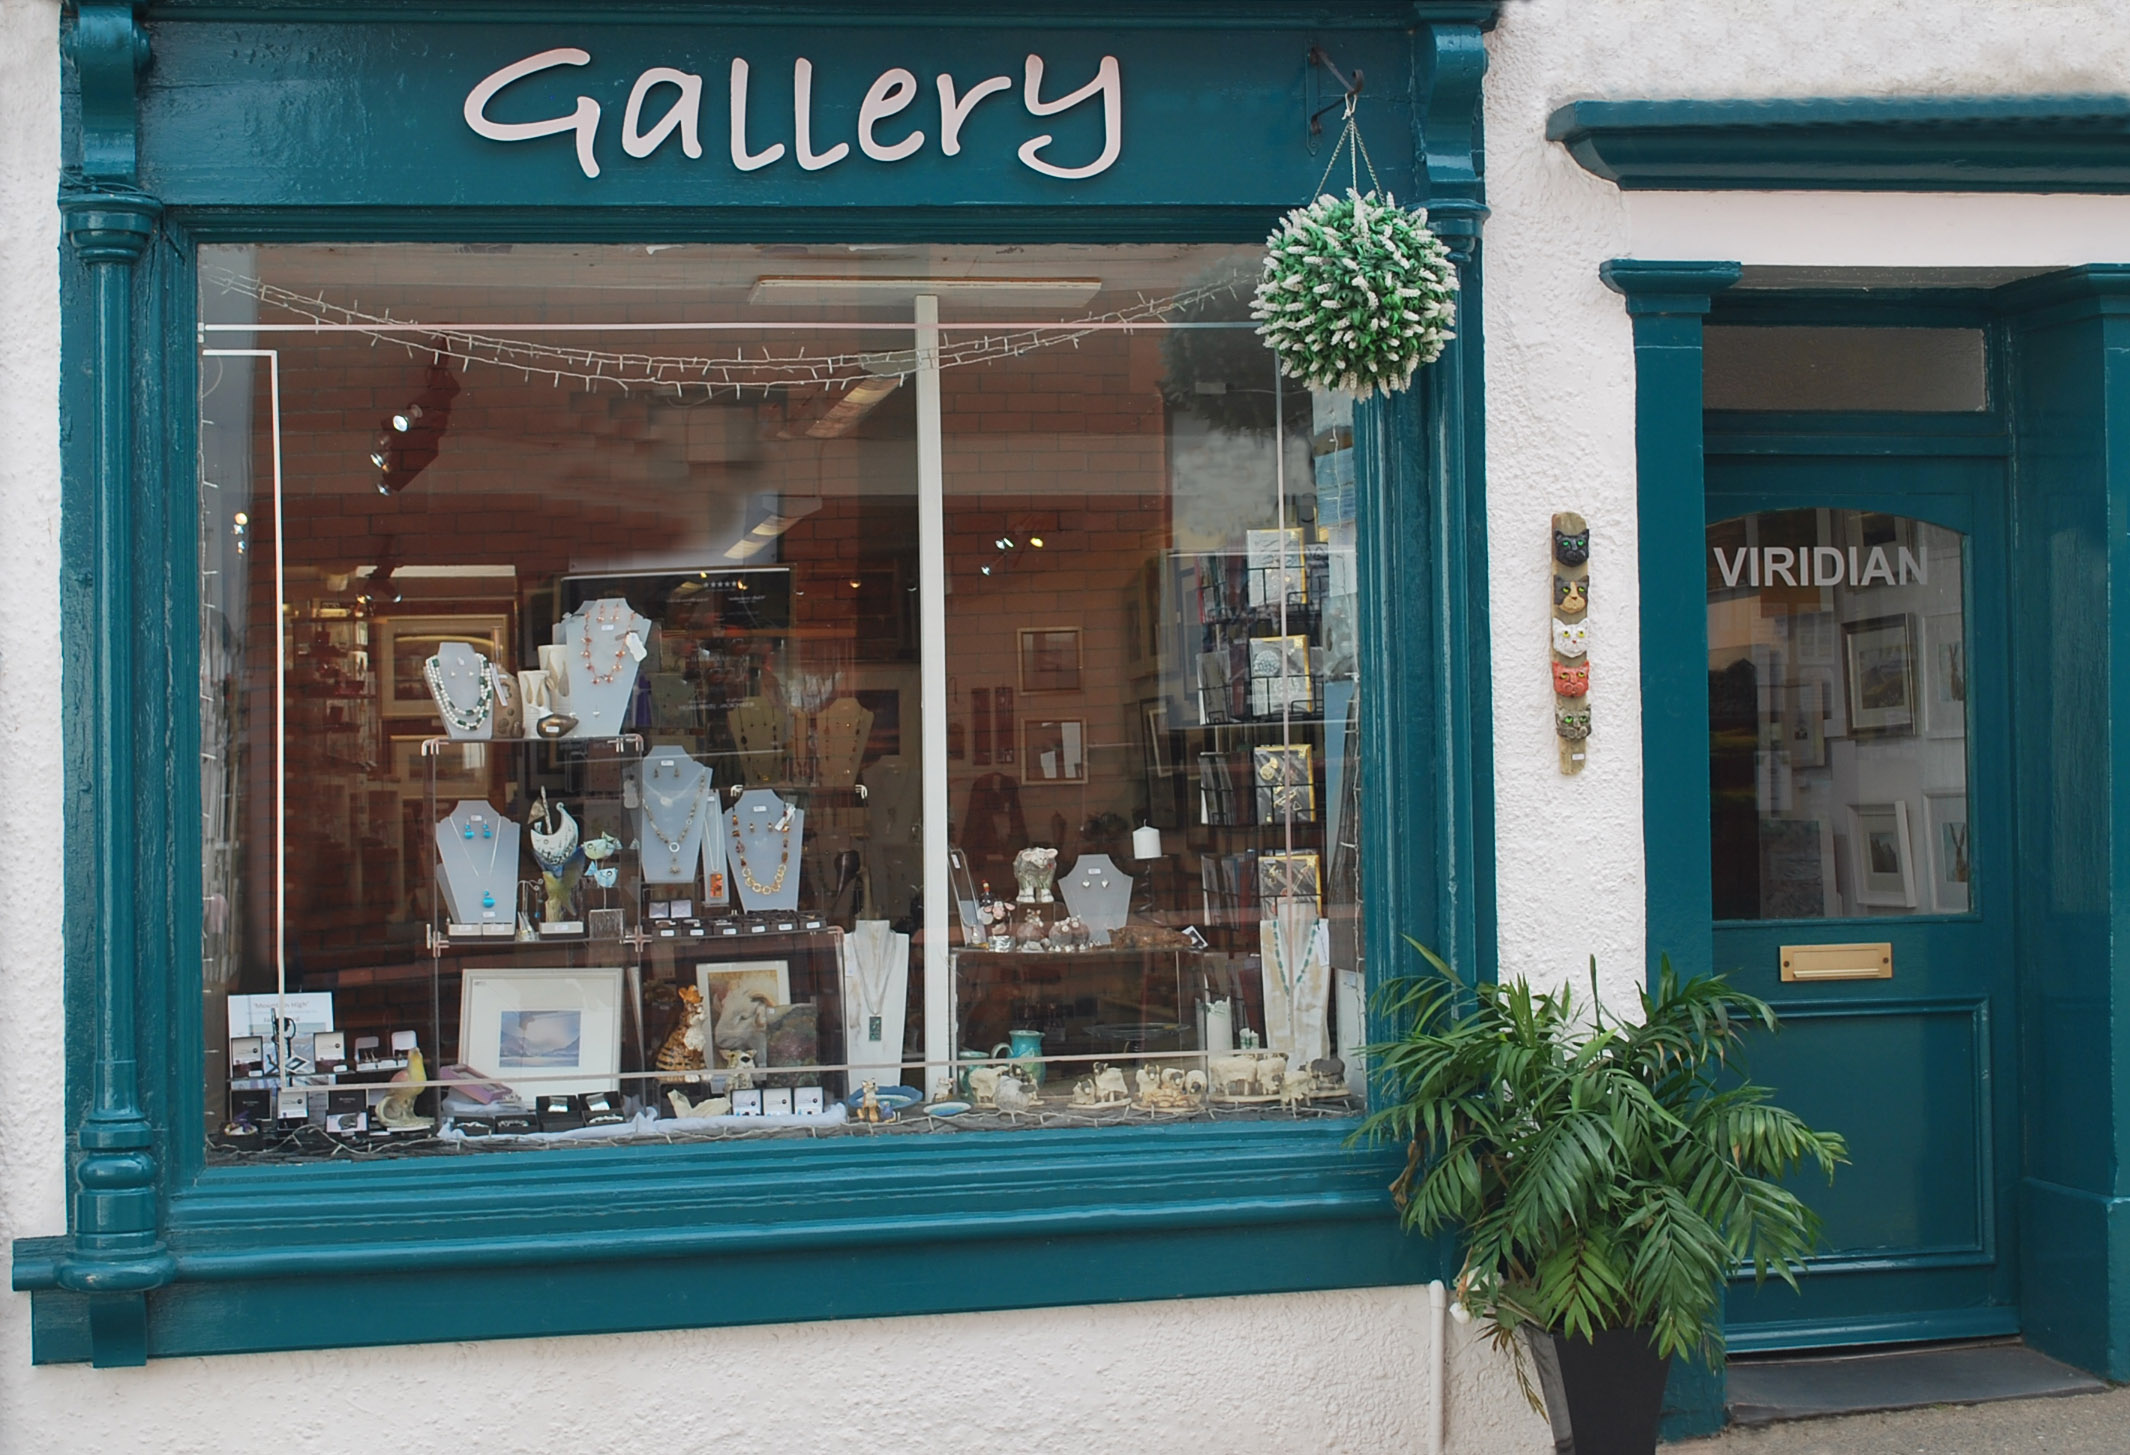 Viridian Gallery    Viridian Gallery, established in 1997, displays a high standard of individual British Art and Craft work, reflecting the rich variety of styles to be found in the area. You will find small quirky or design led gifts alongside large statement pieces.  Owned by watercolourist Diane Gainey, there are permanent displays of her most recent originals, and the full range of her limited edition prints. The gallery also shows the work of other invited artists, resulting in strong dynamic displays of paintings, ceramics, glass, contemporary jewellery and accessories, as well as a superb selection of greetings cards. The gallery is located opposite the cinema.  13 St. John's Street, Keswick, CA12 5AP  017687 71328